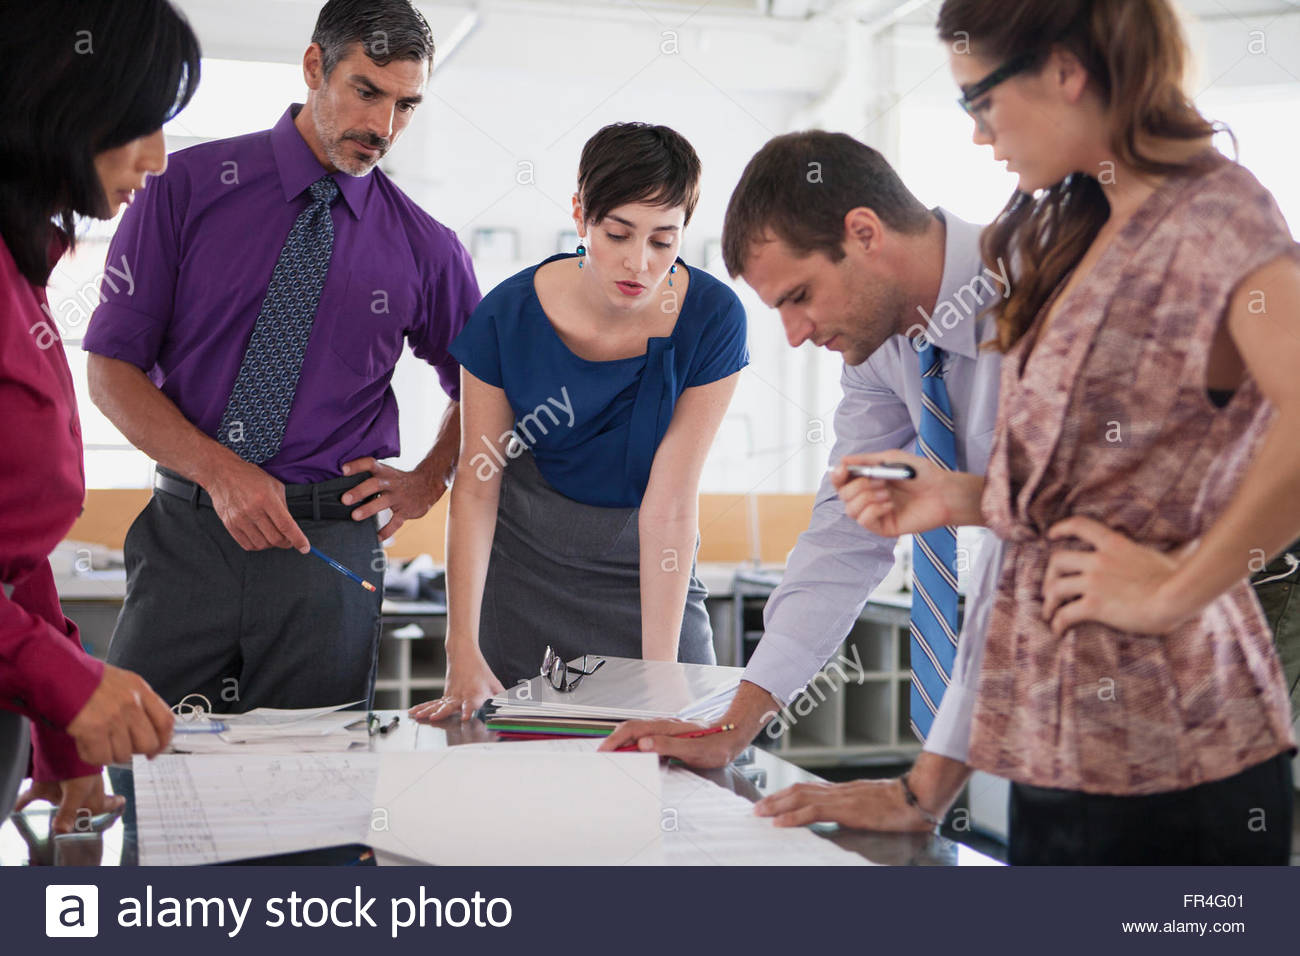 group of businesspeople reviewing blueprints - Stock Image